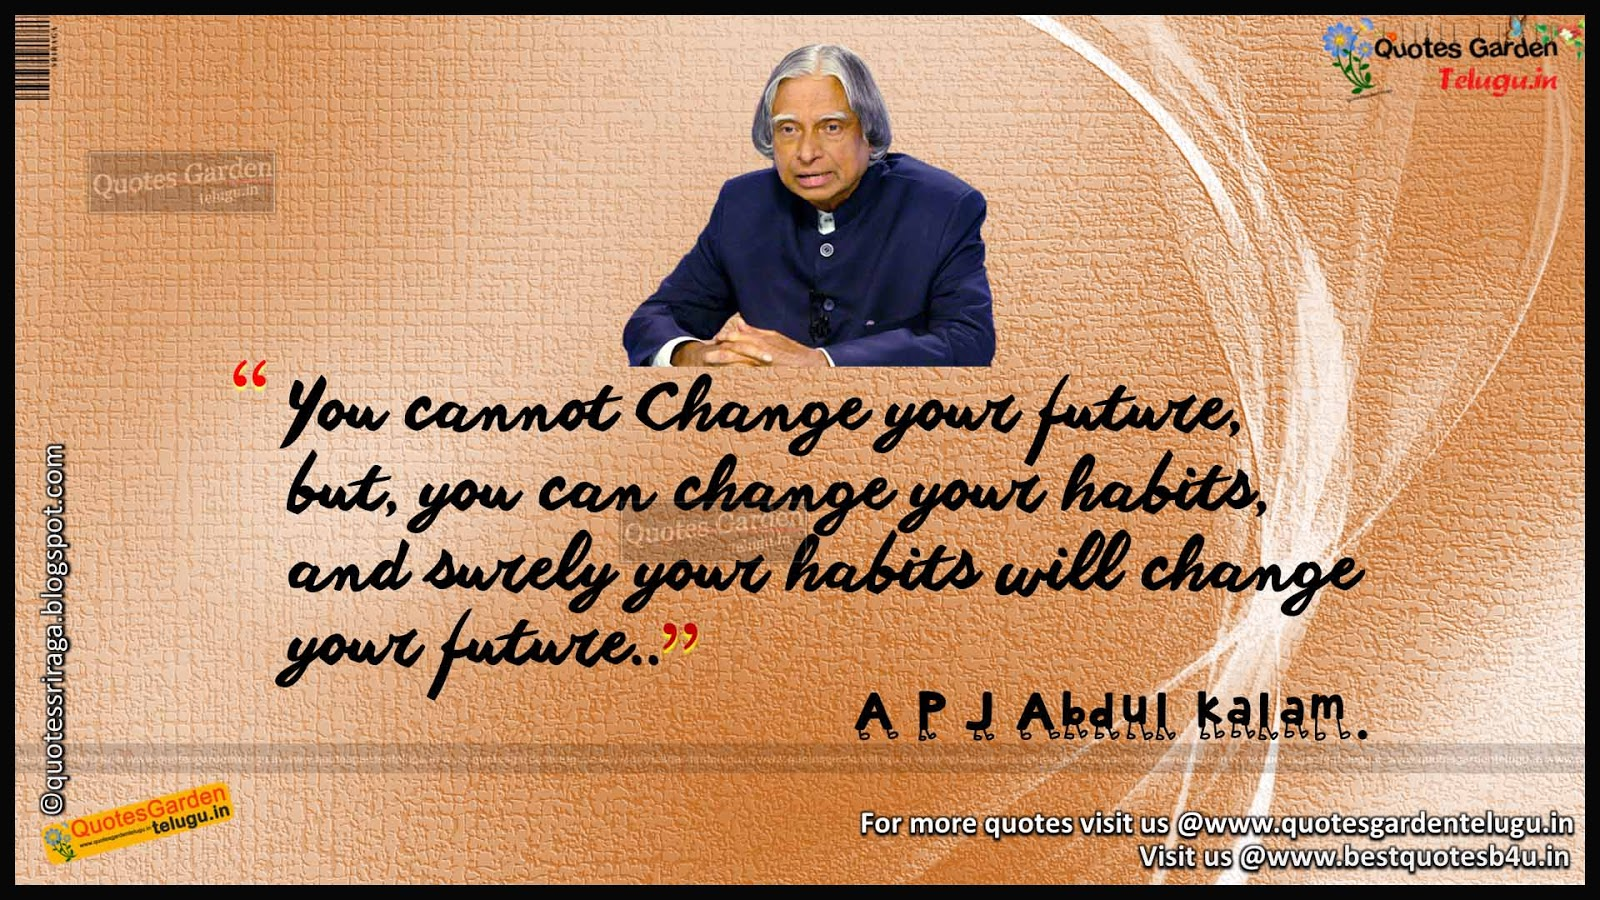 inspirational quotes from abdul kalam quotes garden